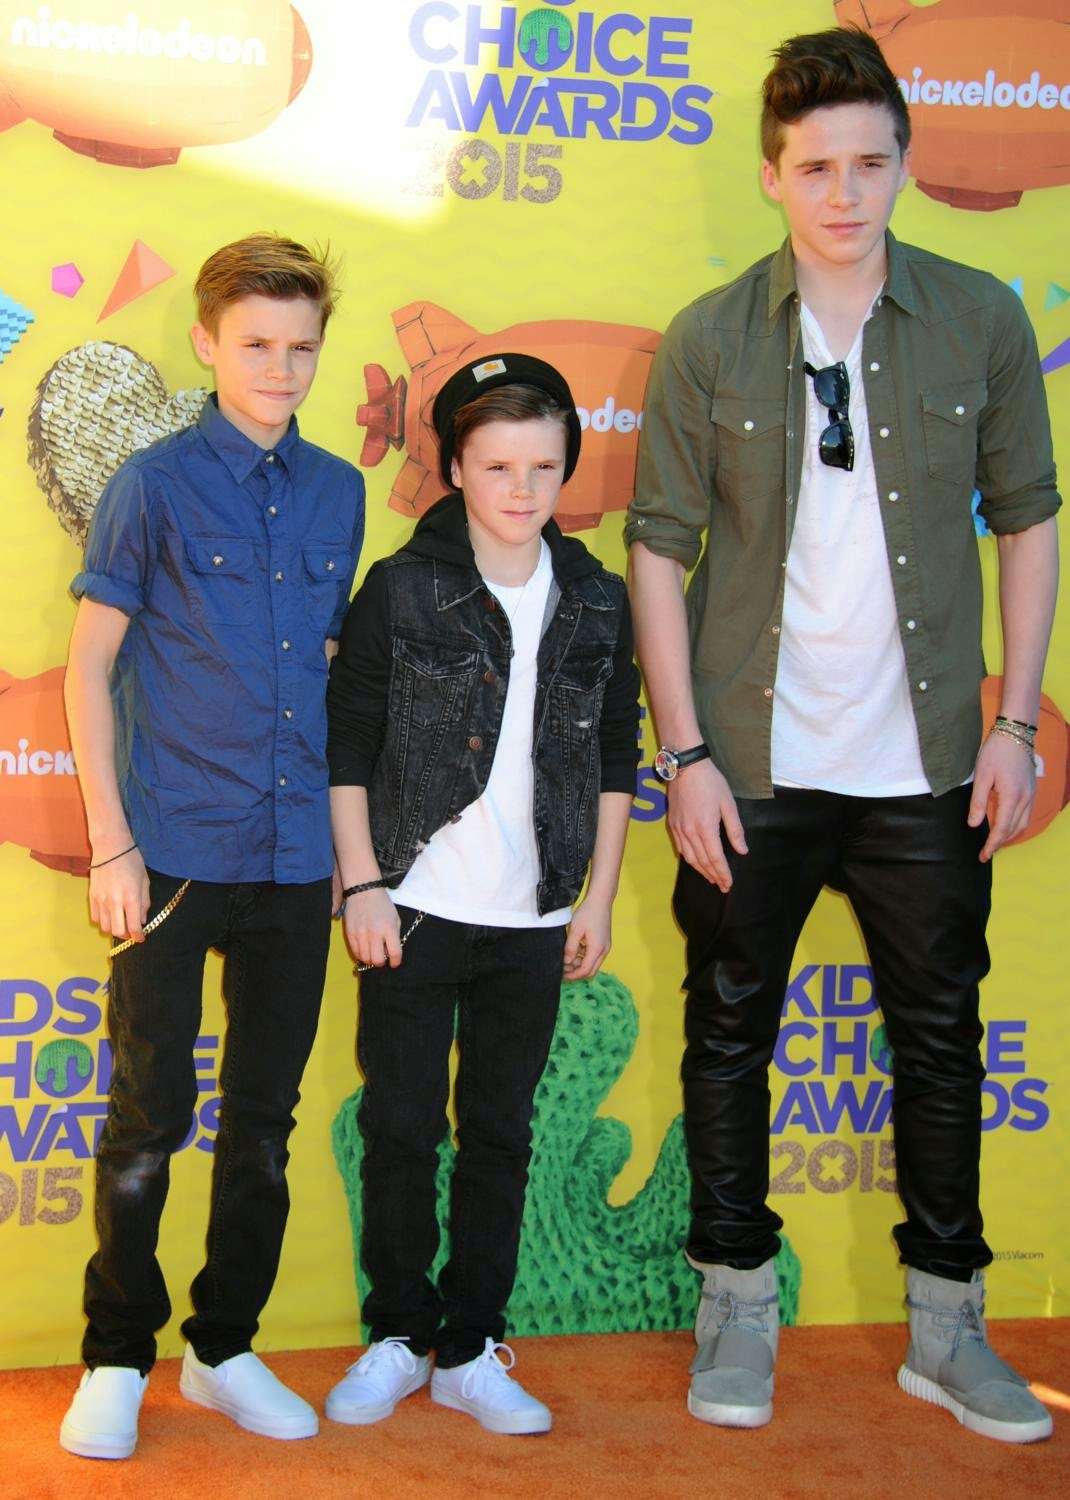 Brooklyn, Romeo and Cruz Beckham look handsome at the 2015 Nickelodeon Kids' Choice Awards